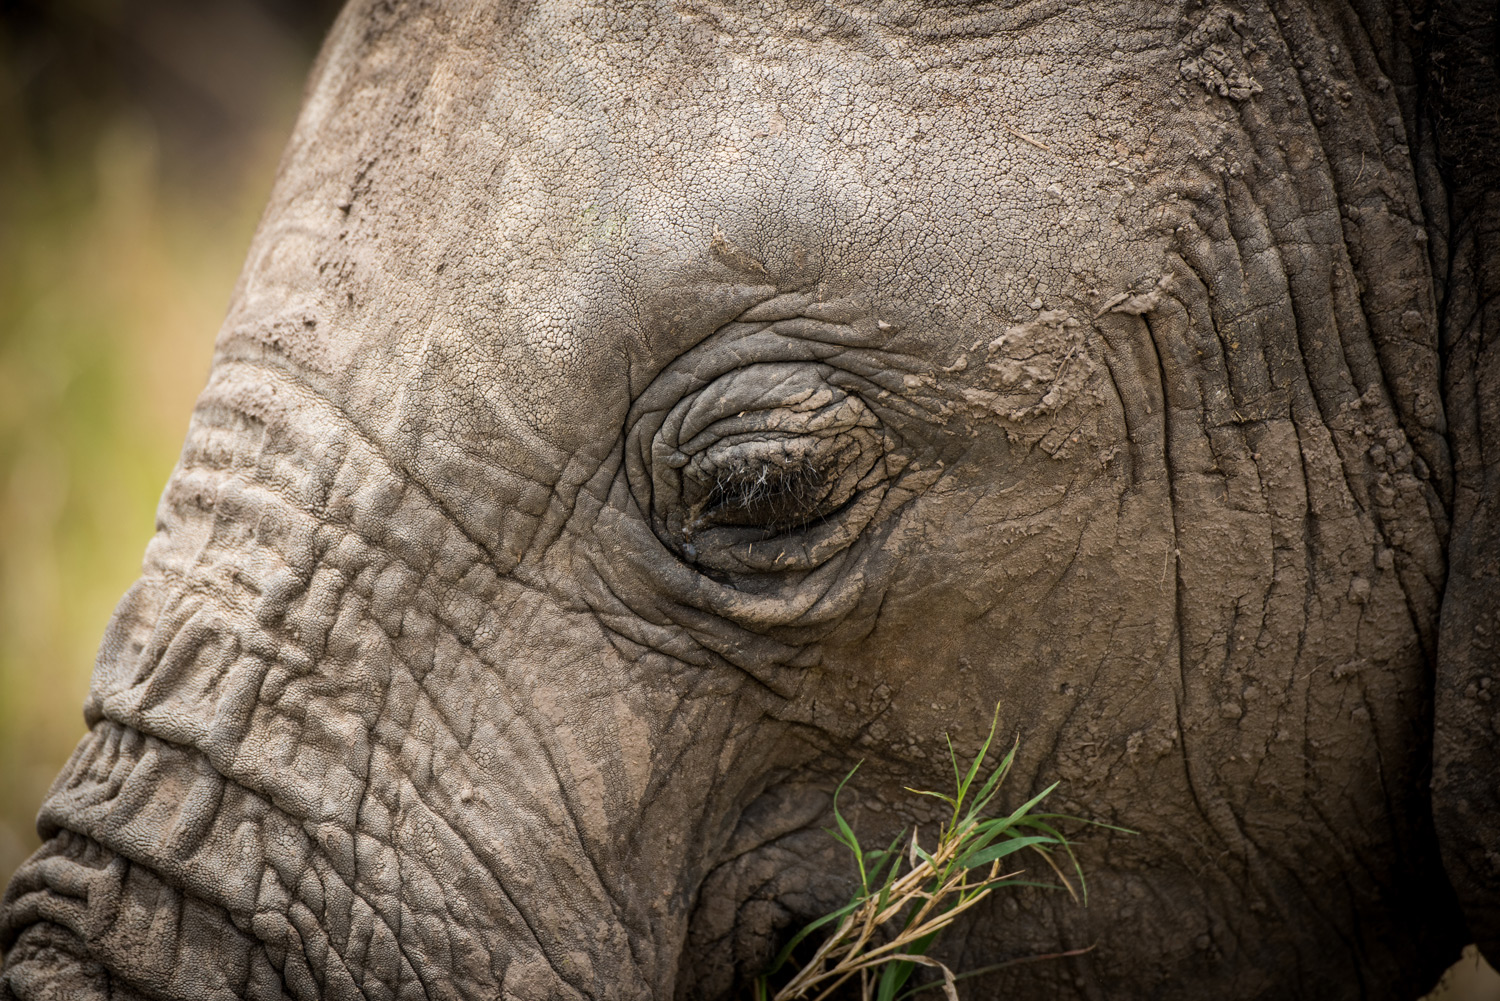 Elephants eye portrait